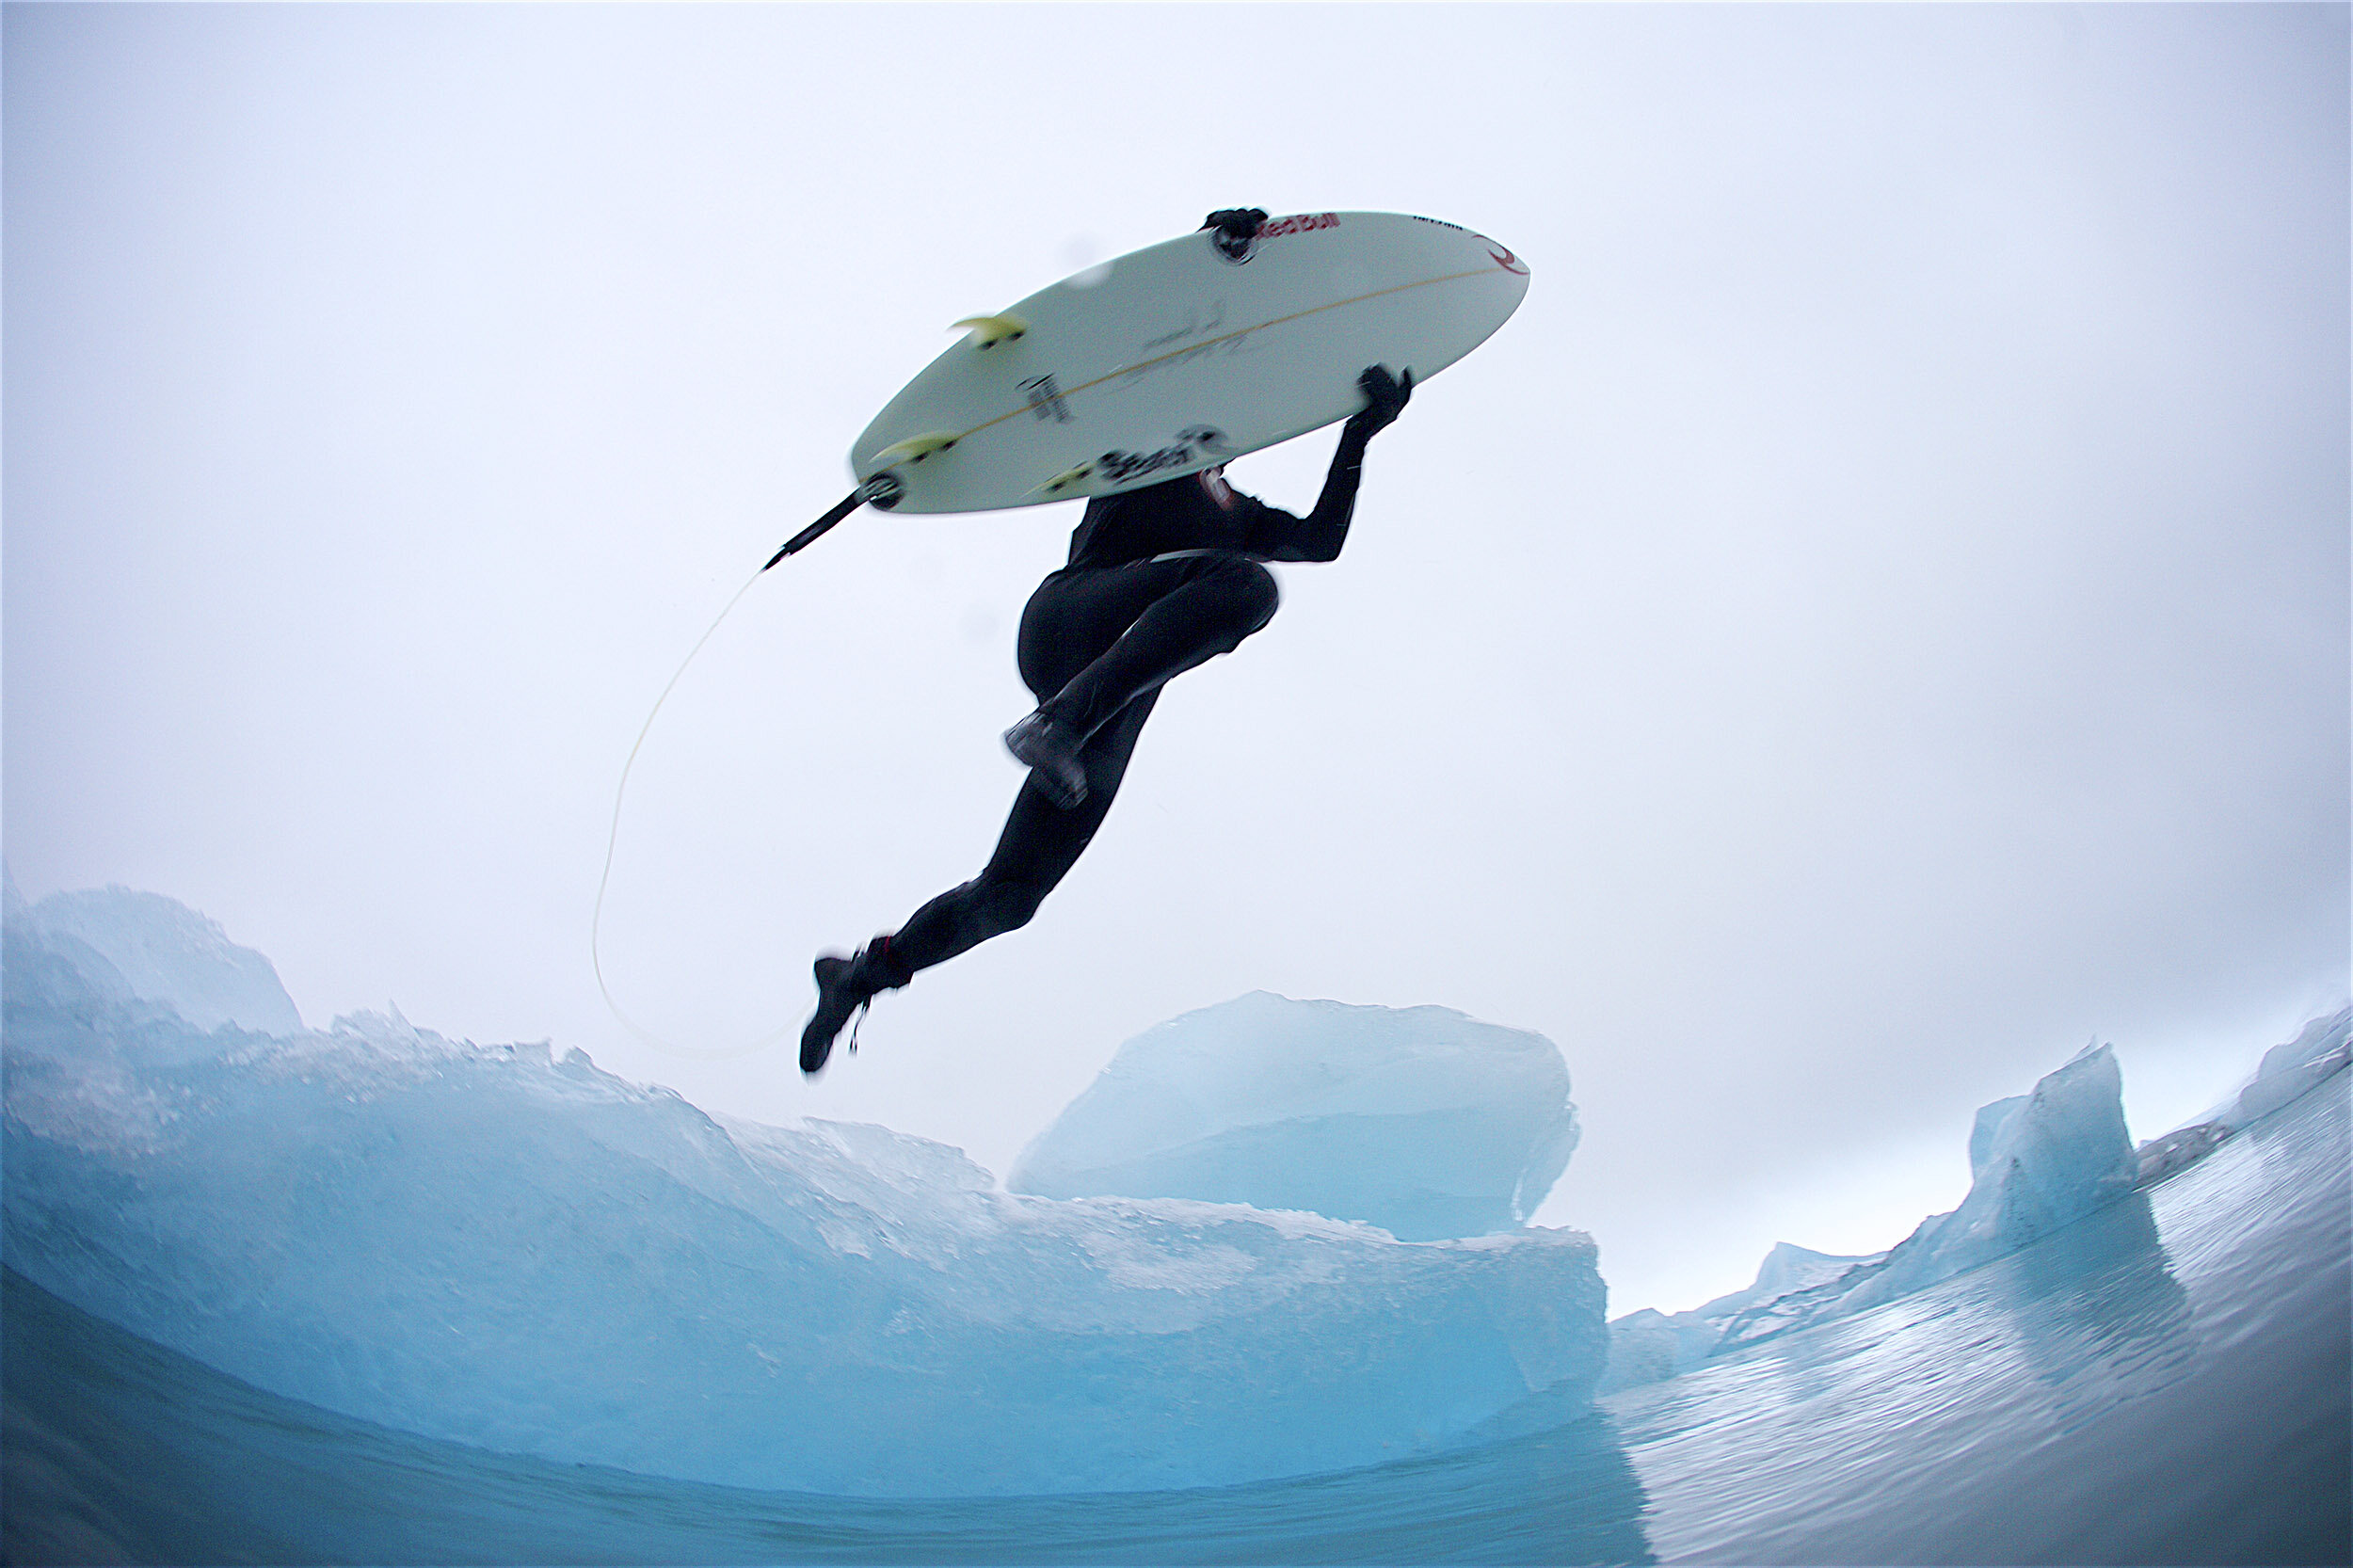 Ted Grambeau Surf and Adventure photography